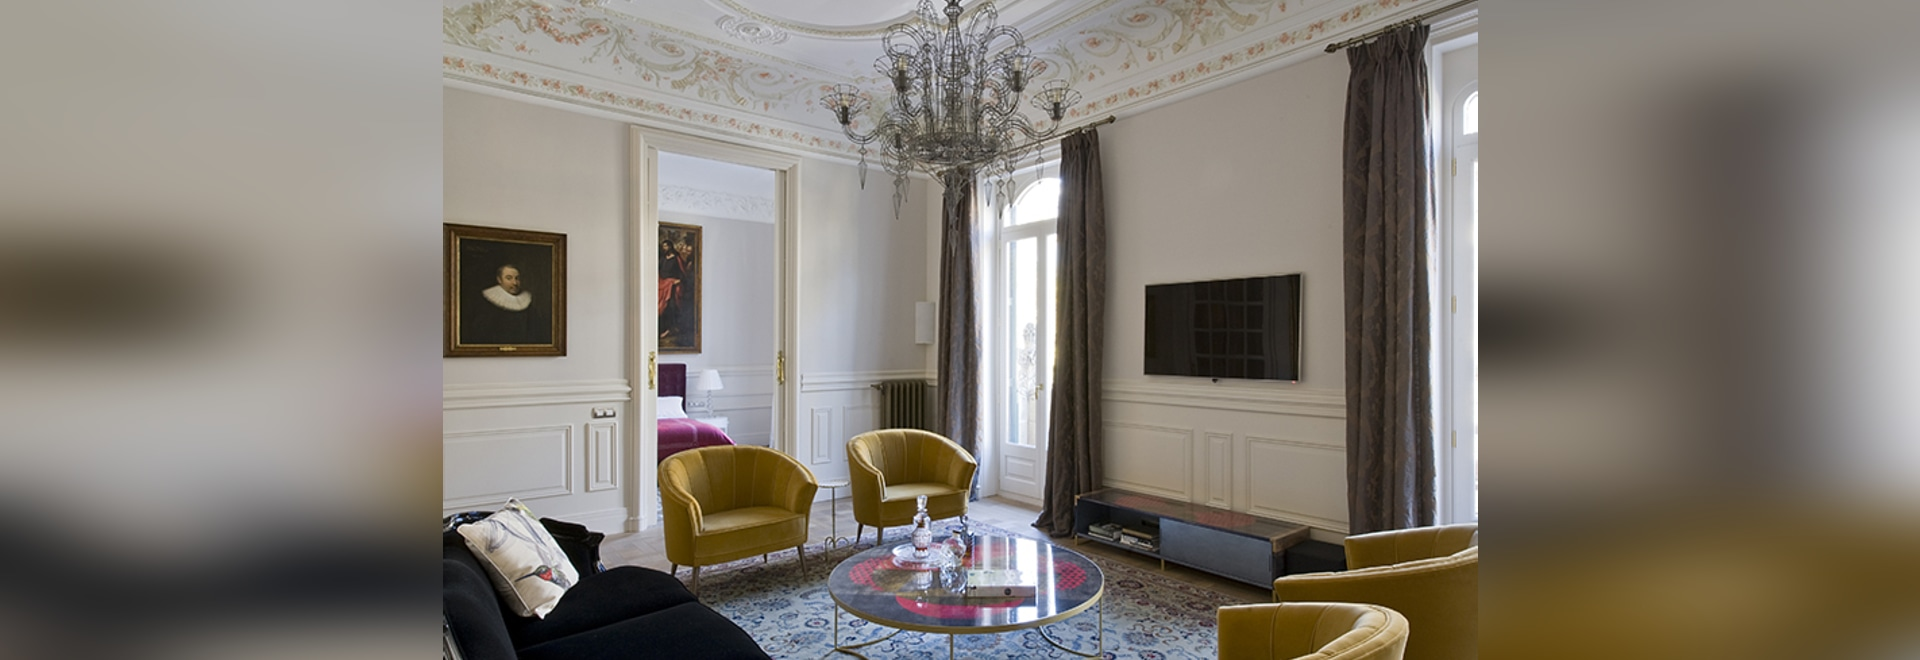 Discover the Spanish Touch In Art Apartment with BRABBU